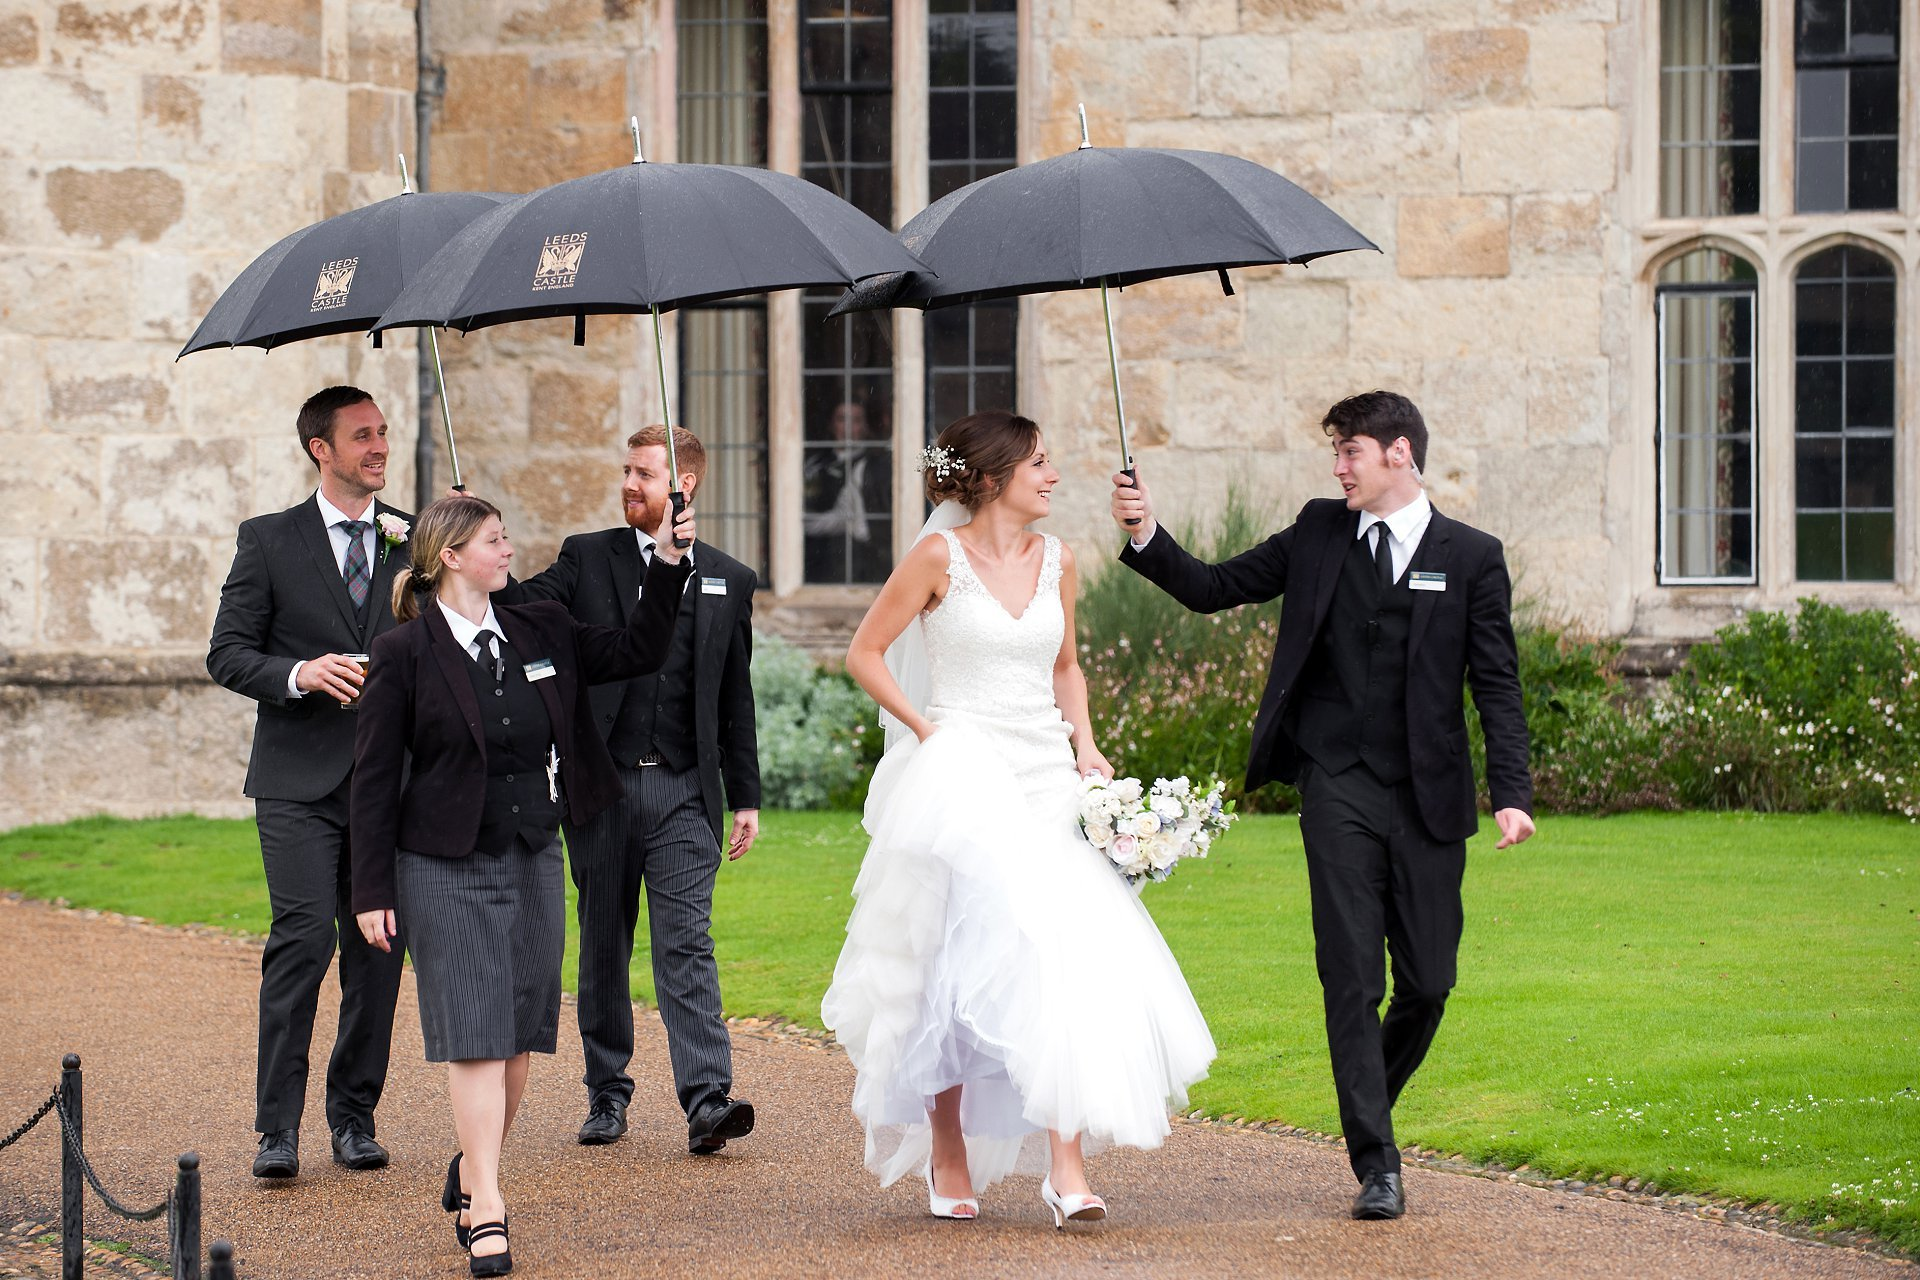 Leeds Castle staff joking with the bride on her wedding day